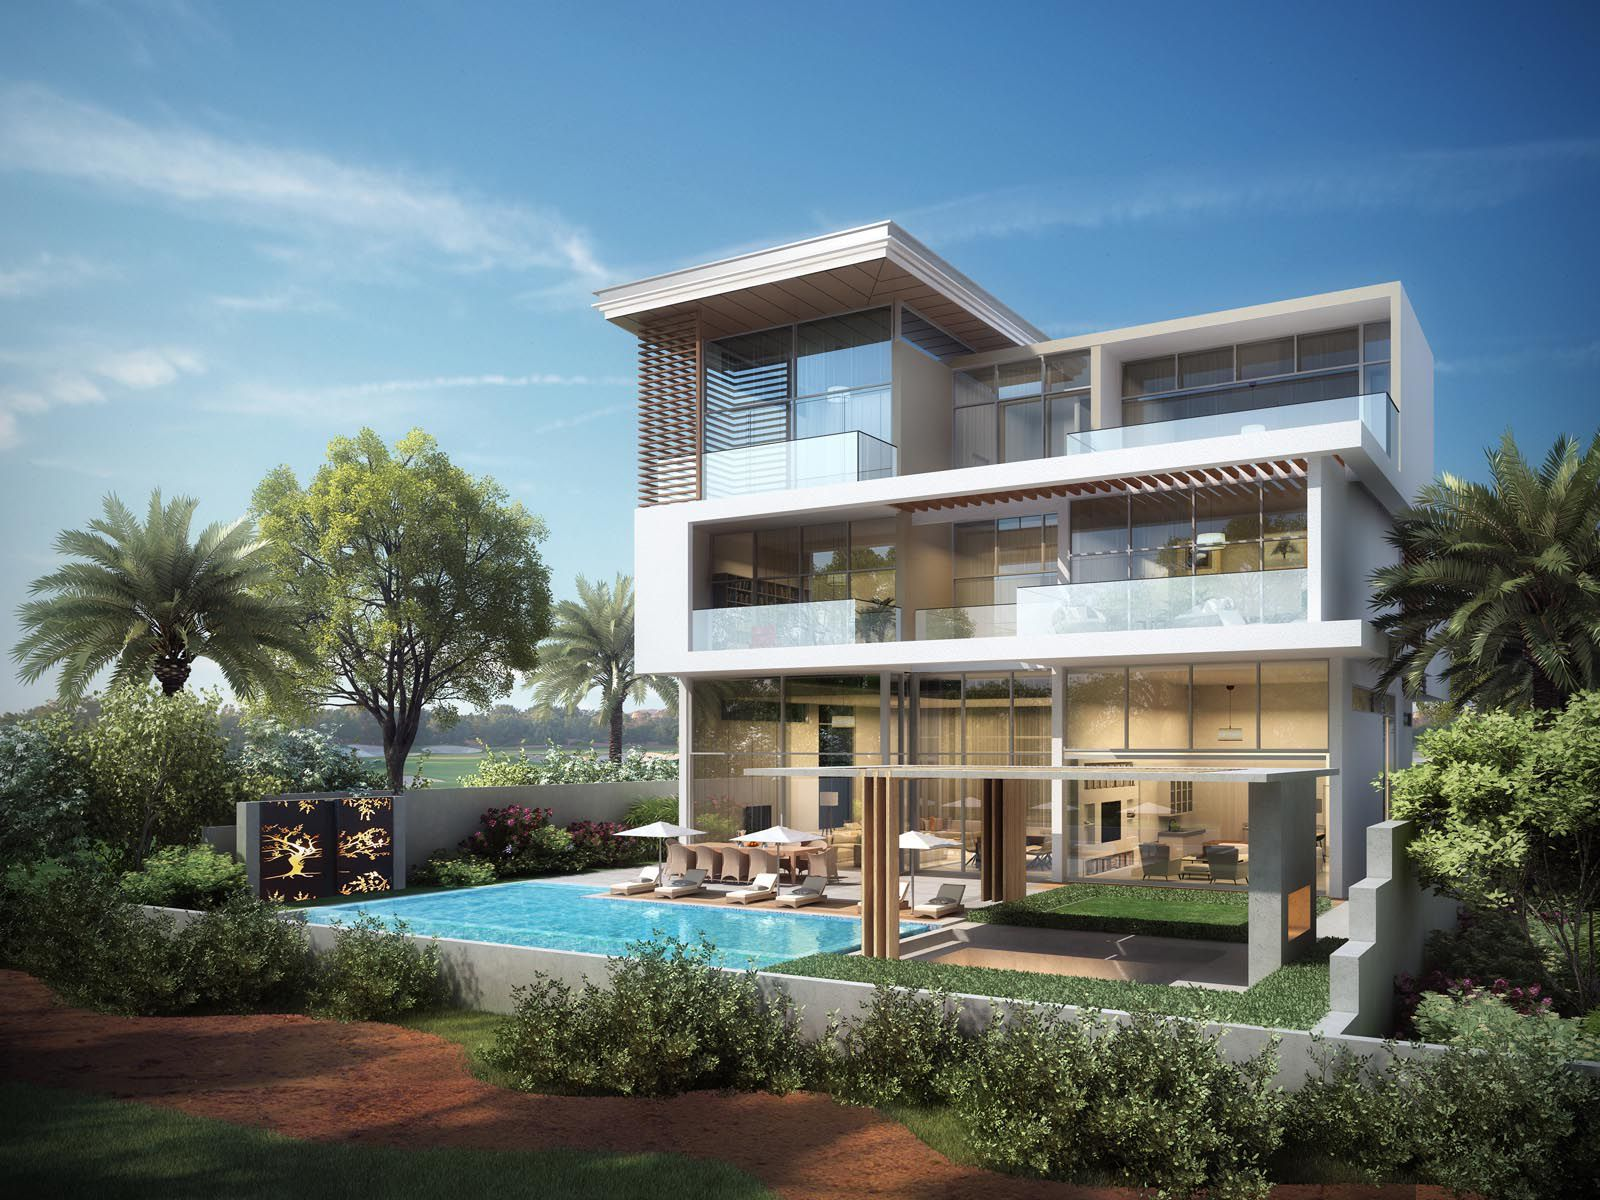 Welcome to 'Hillside' a limited collection of contemporary homes